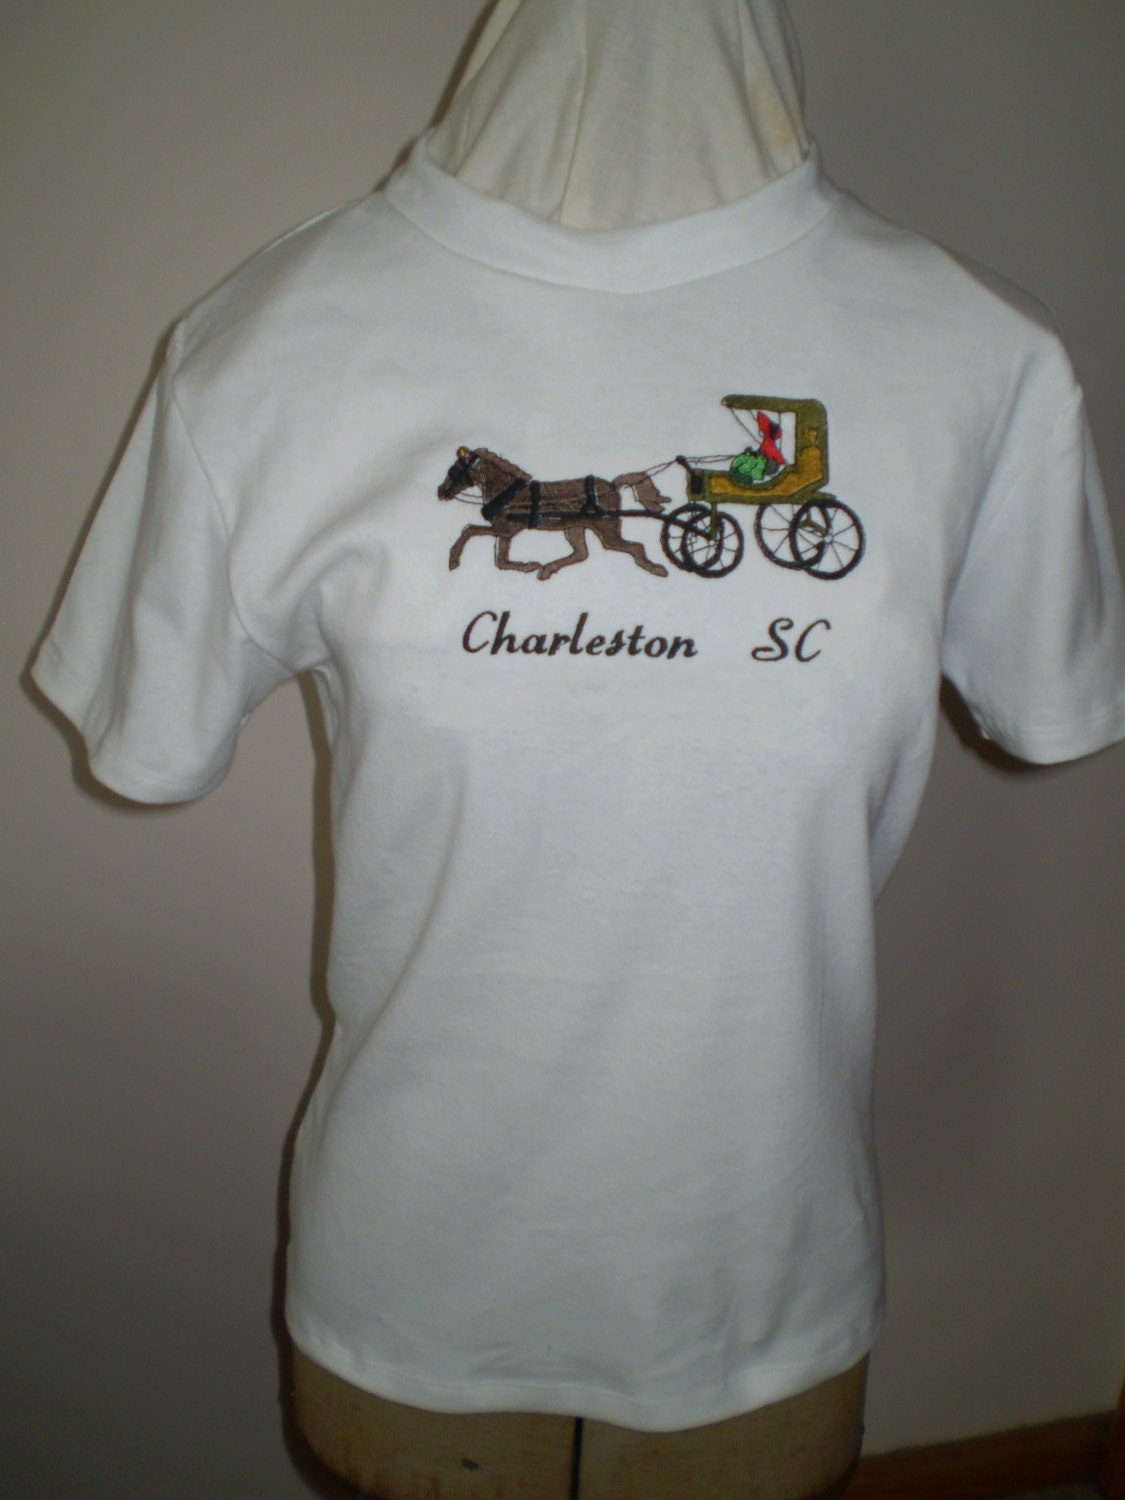 T shirt with charleston sc logo on it for T shirt printing charleston sc